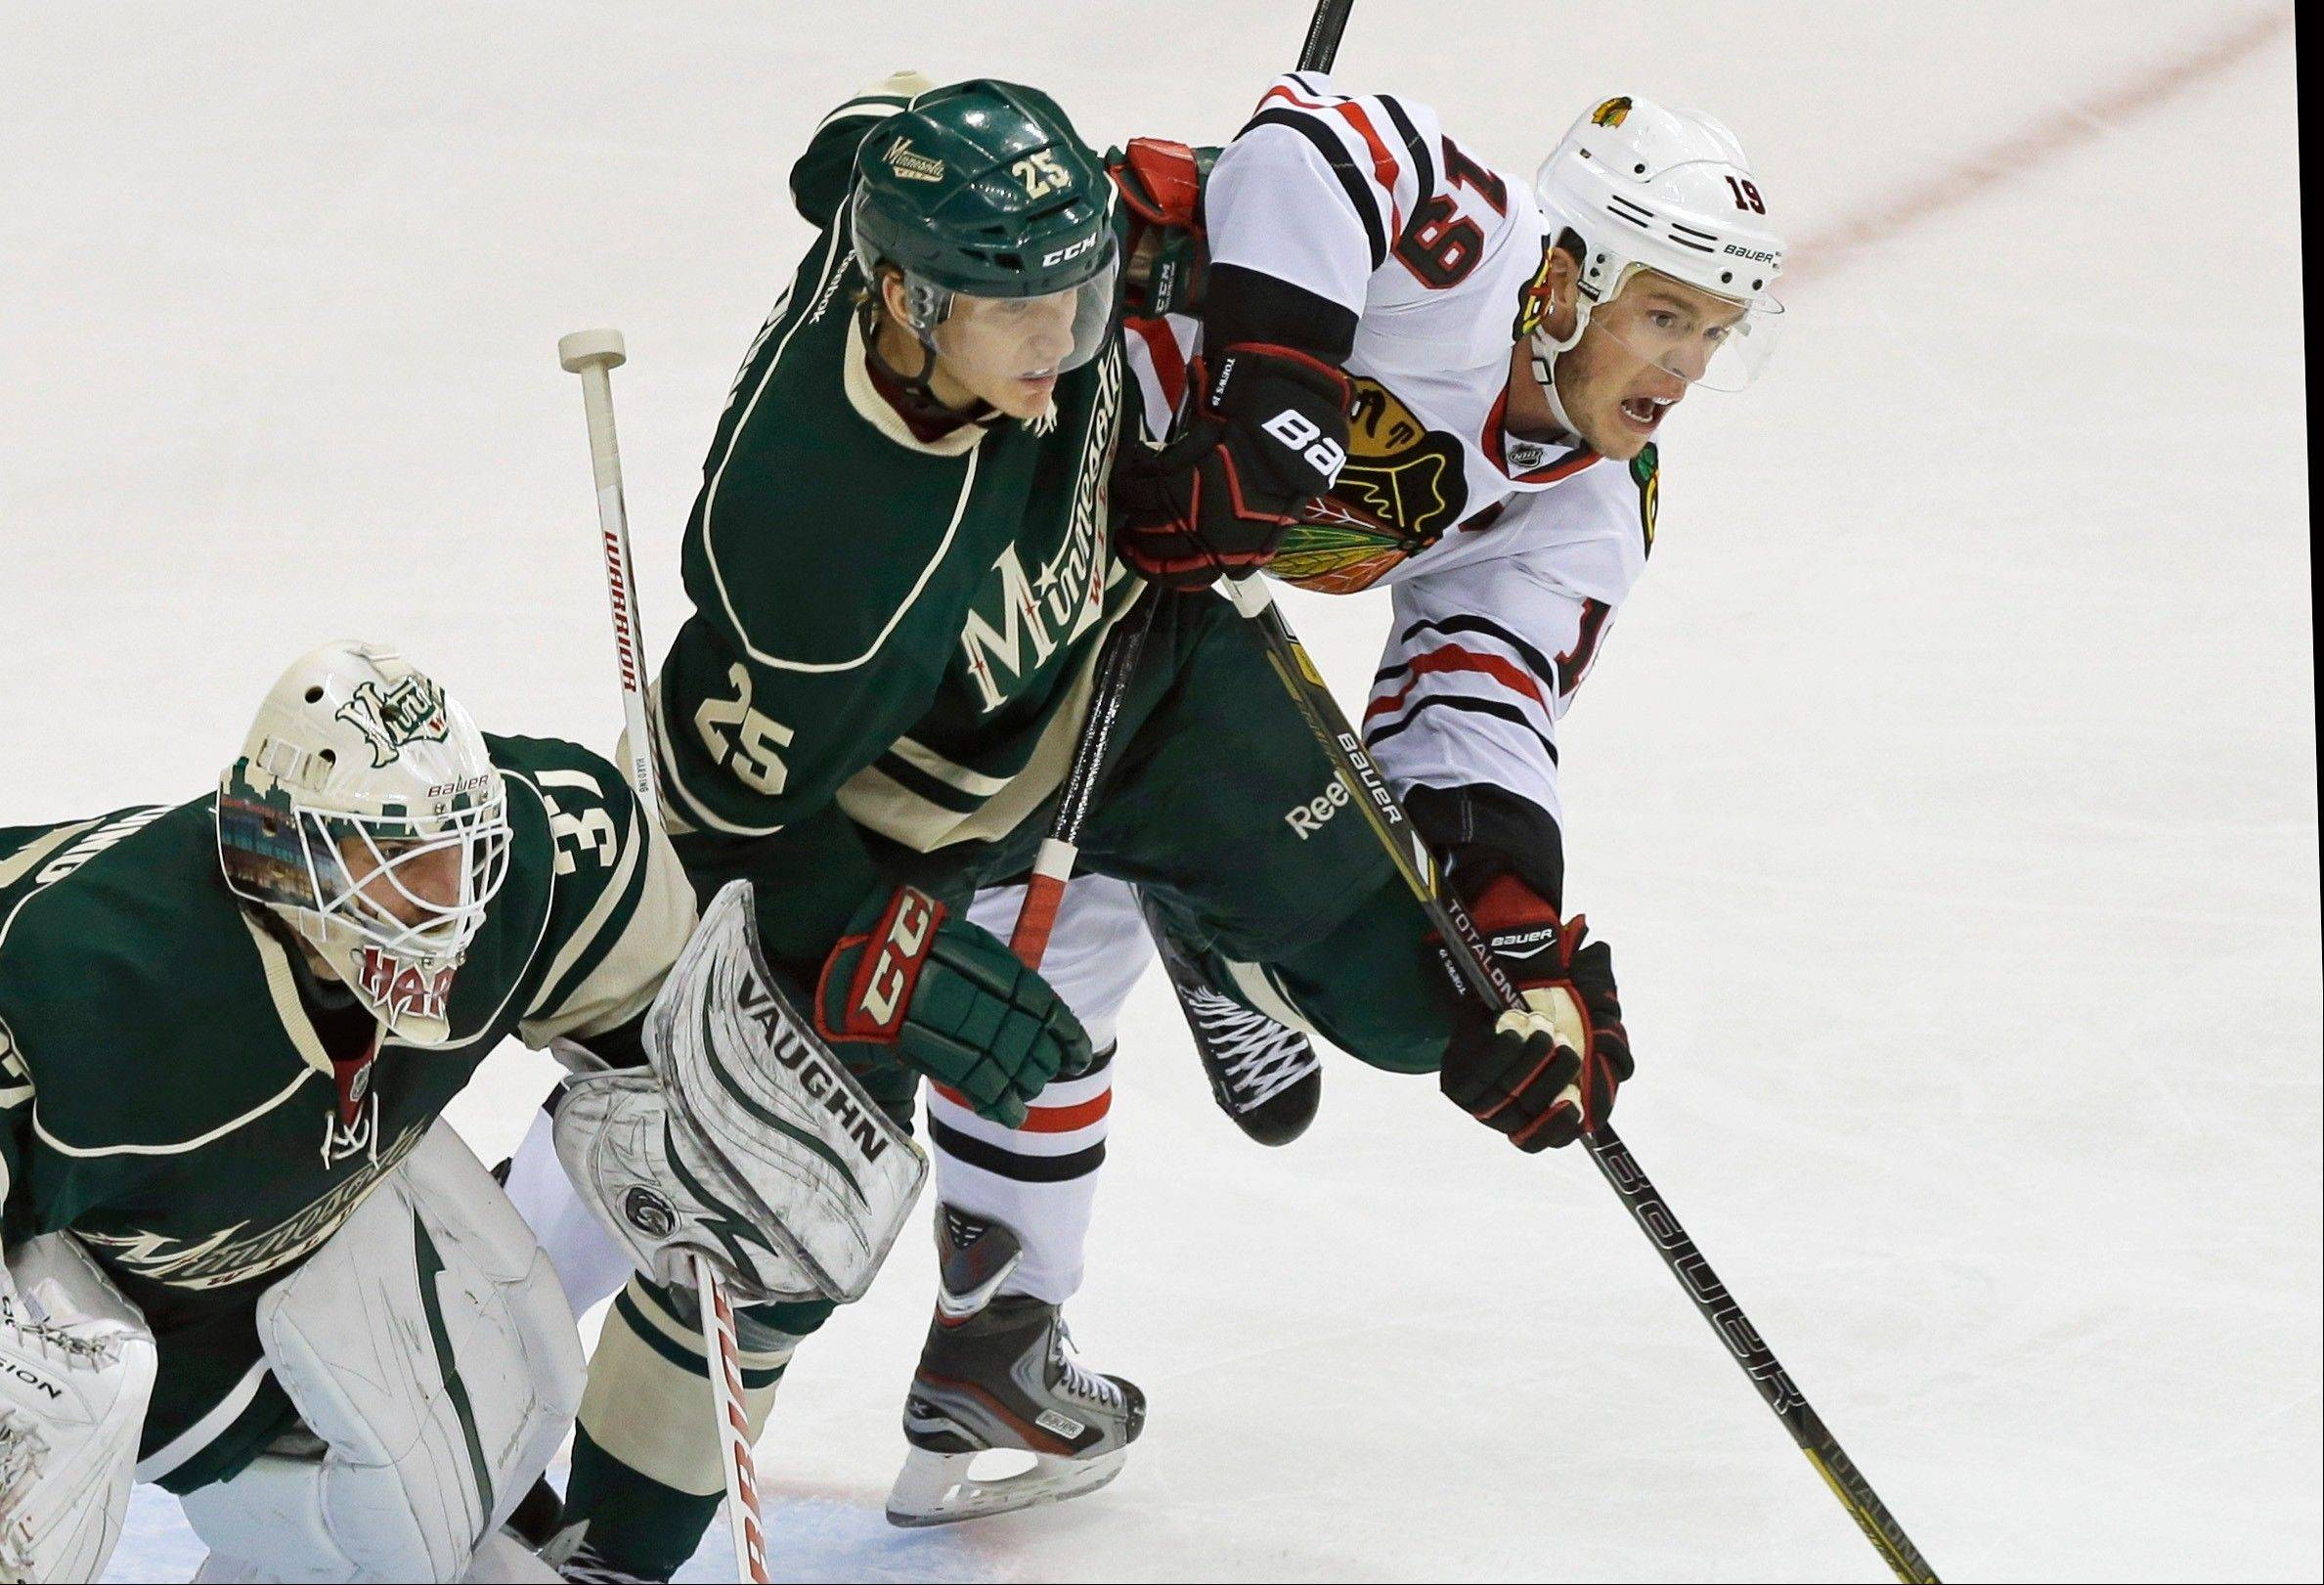 Minnesota Wild's Jonas Brodin, center, keeps Chicago Blackhawks' Jonathan Toews, right, in check as he helps goalie Josh Harding defend the net in the first period of Game 4 of an NHL hockey Stanley Cup playoff series, Tuesday, May 7, 2013 in St. Paul, Minn.